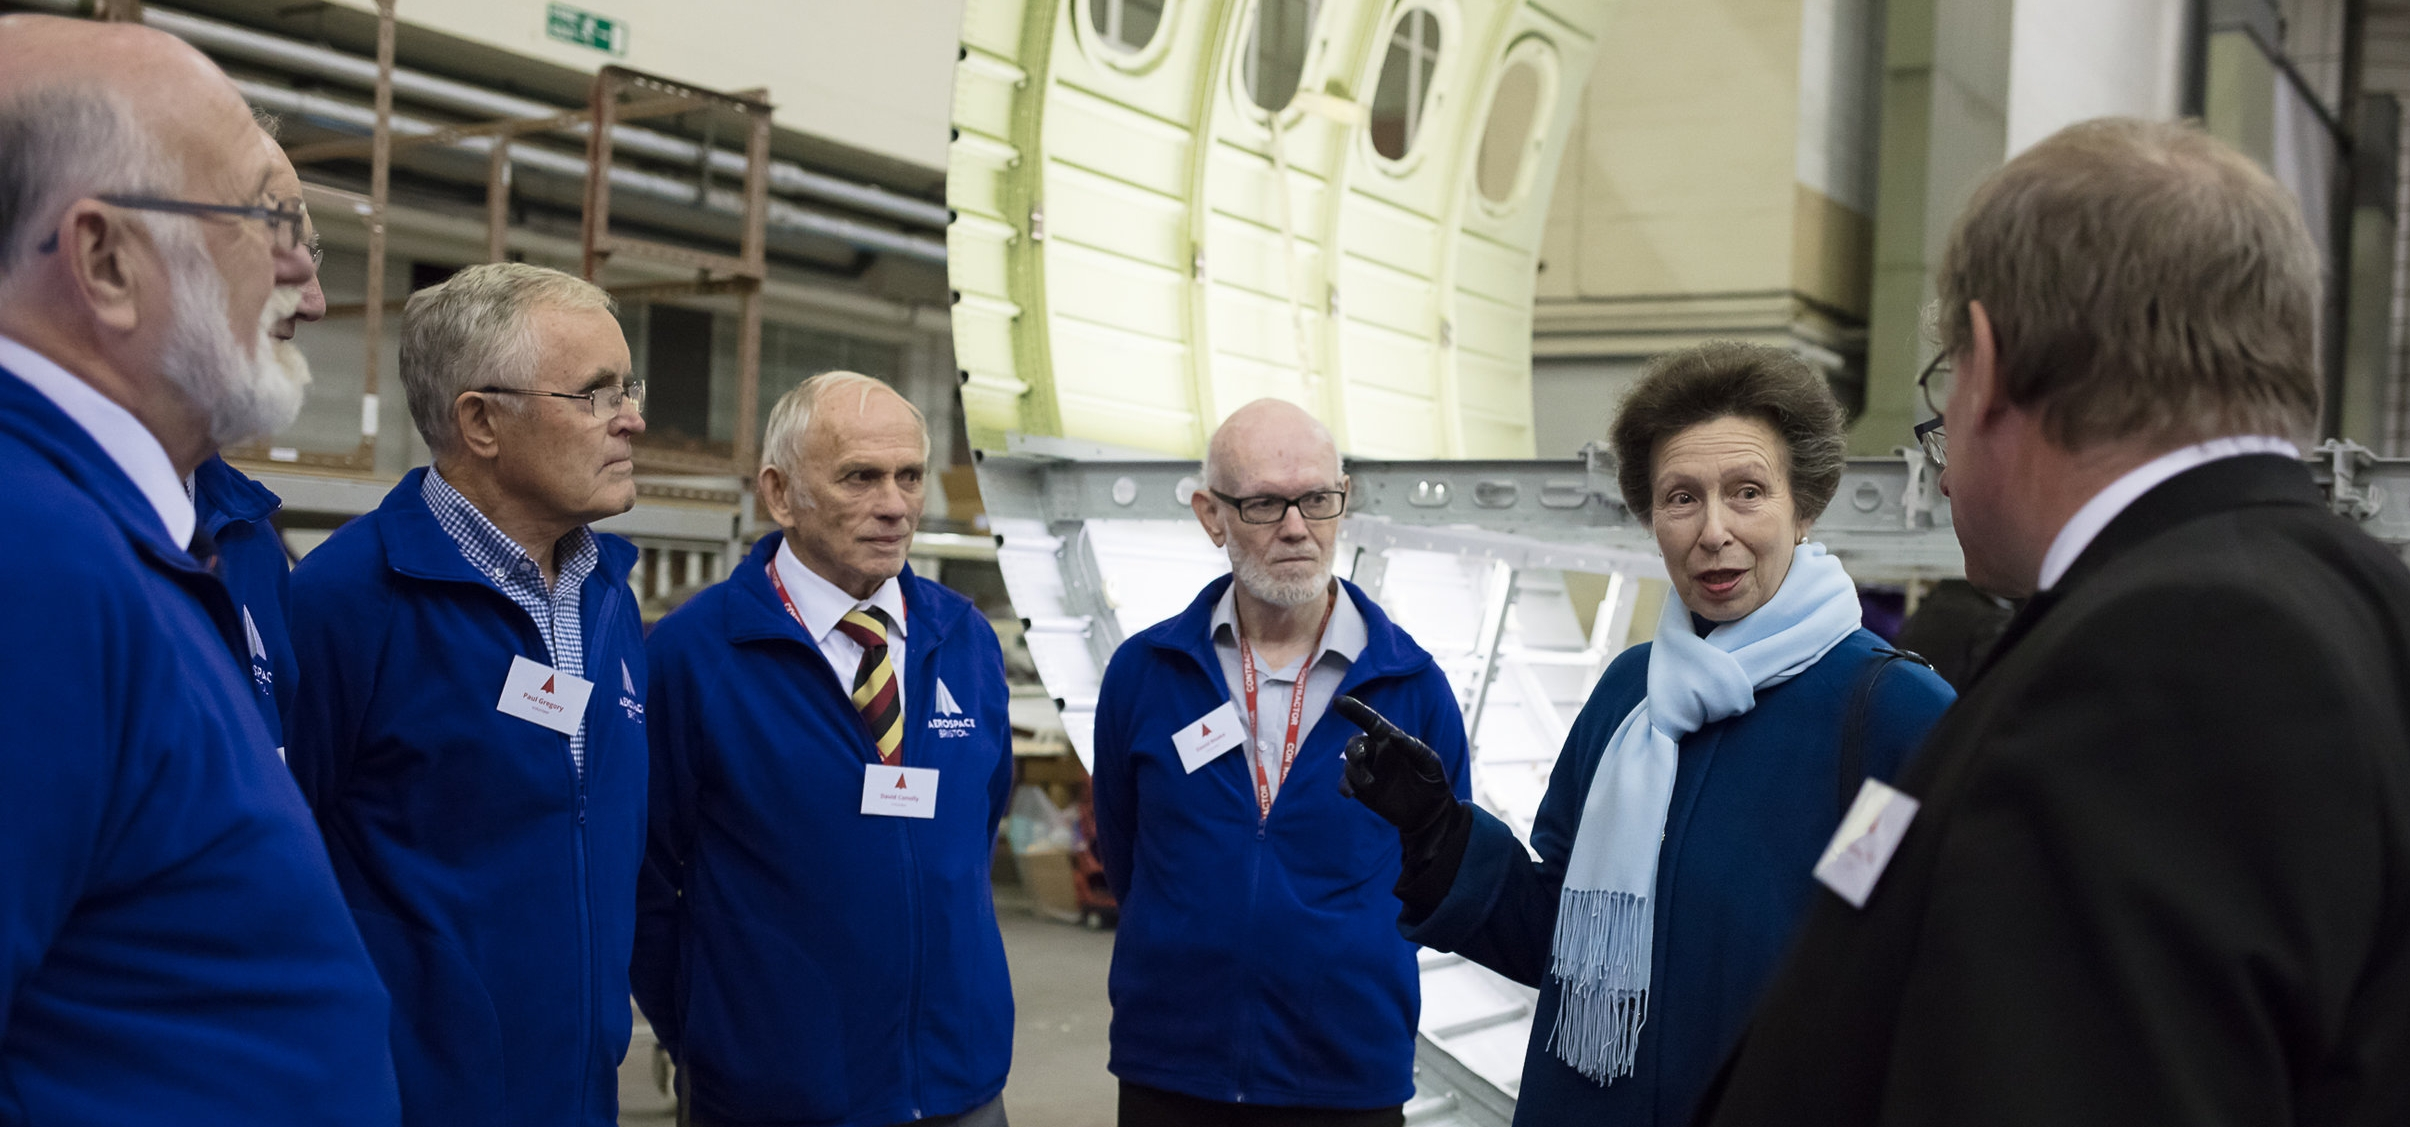 HRH The Princess Royal meets with Iain Gray CBE, Chairman of the Bristol Aero Collection Trust and Aerospace Bristol volunteers